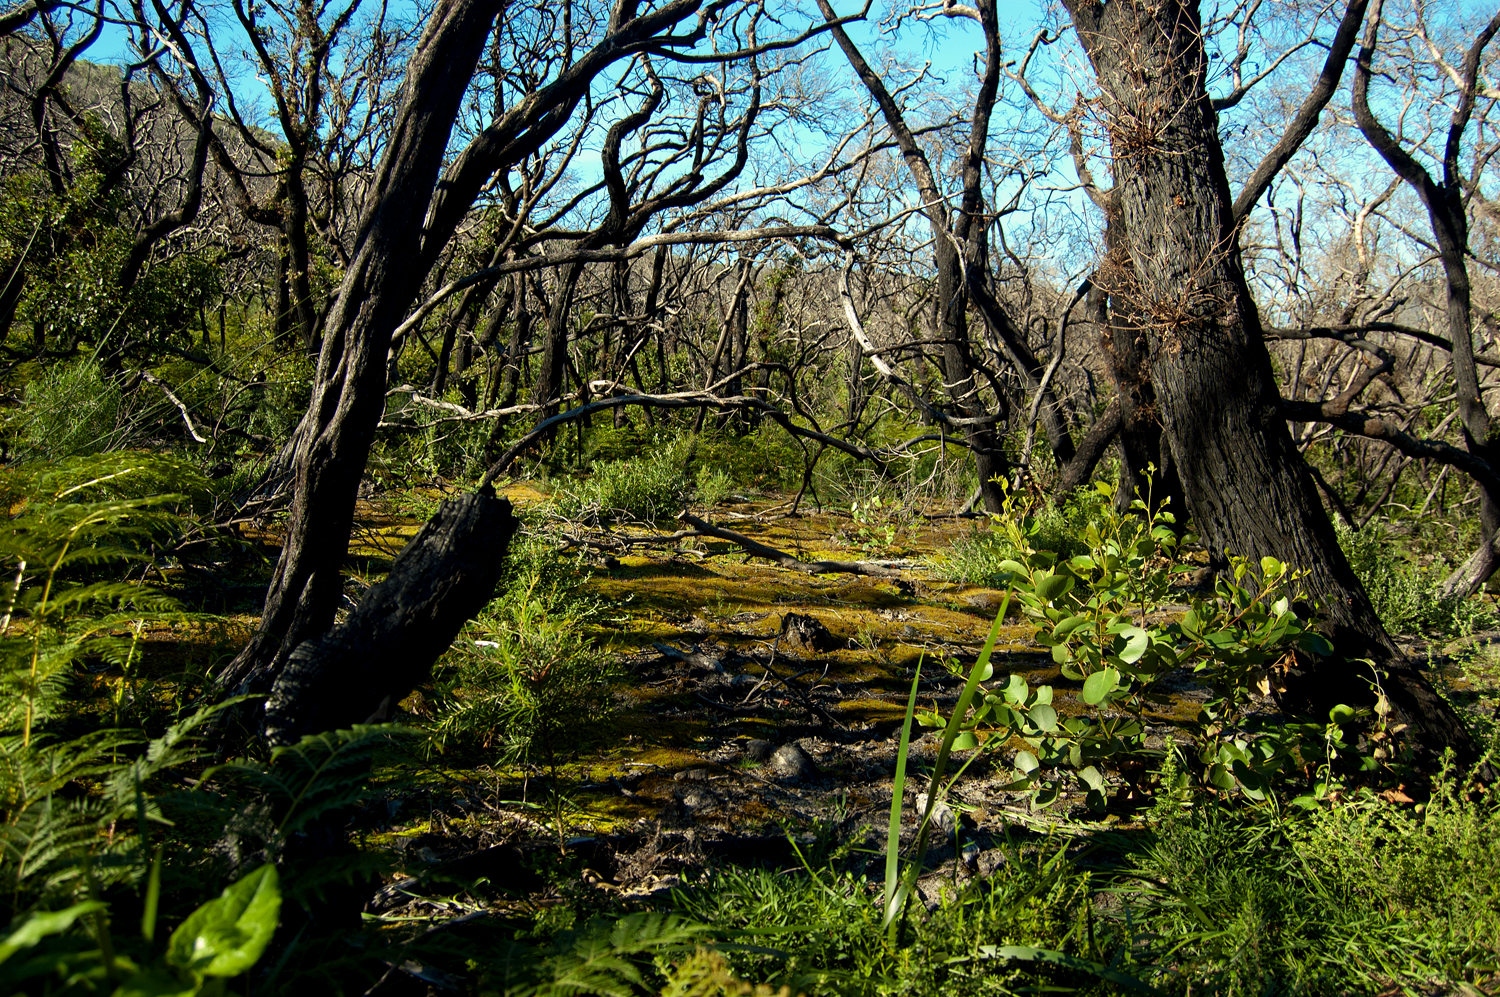 untitled #80 [lilly pilly gully, wilson's promontory national park, victoria, australia, 2010]